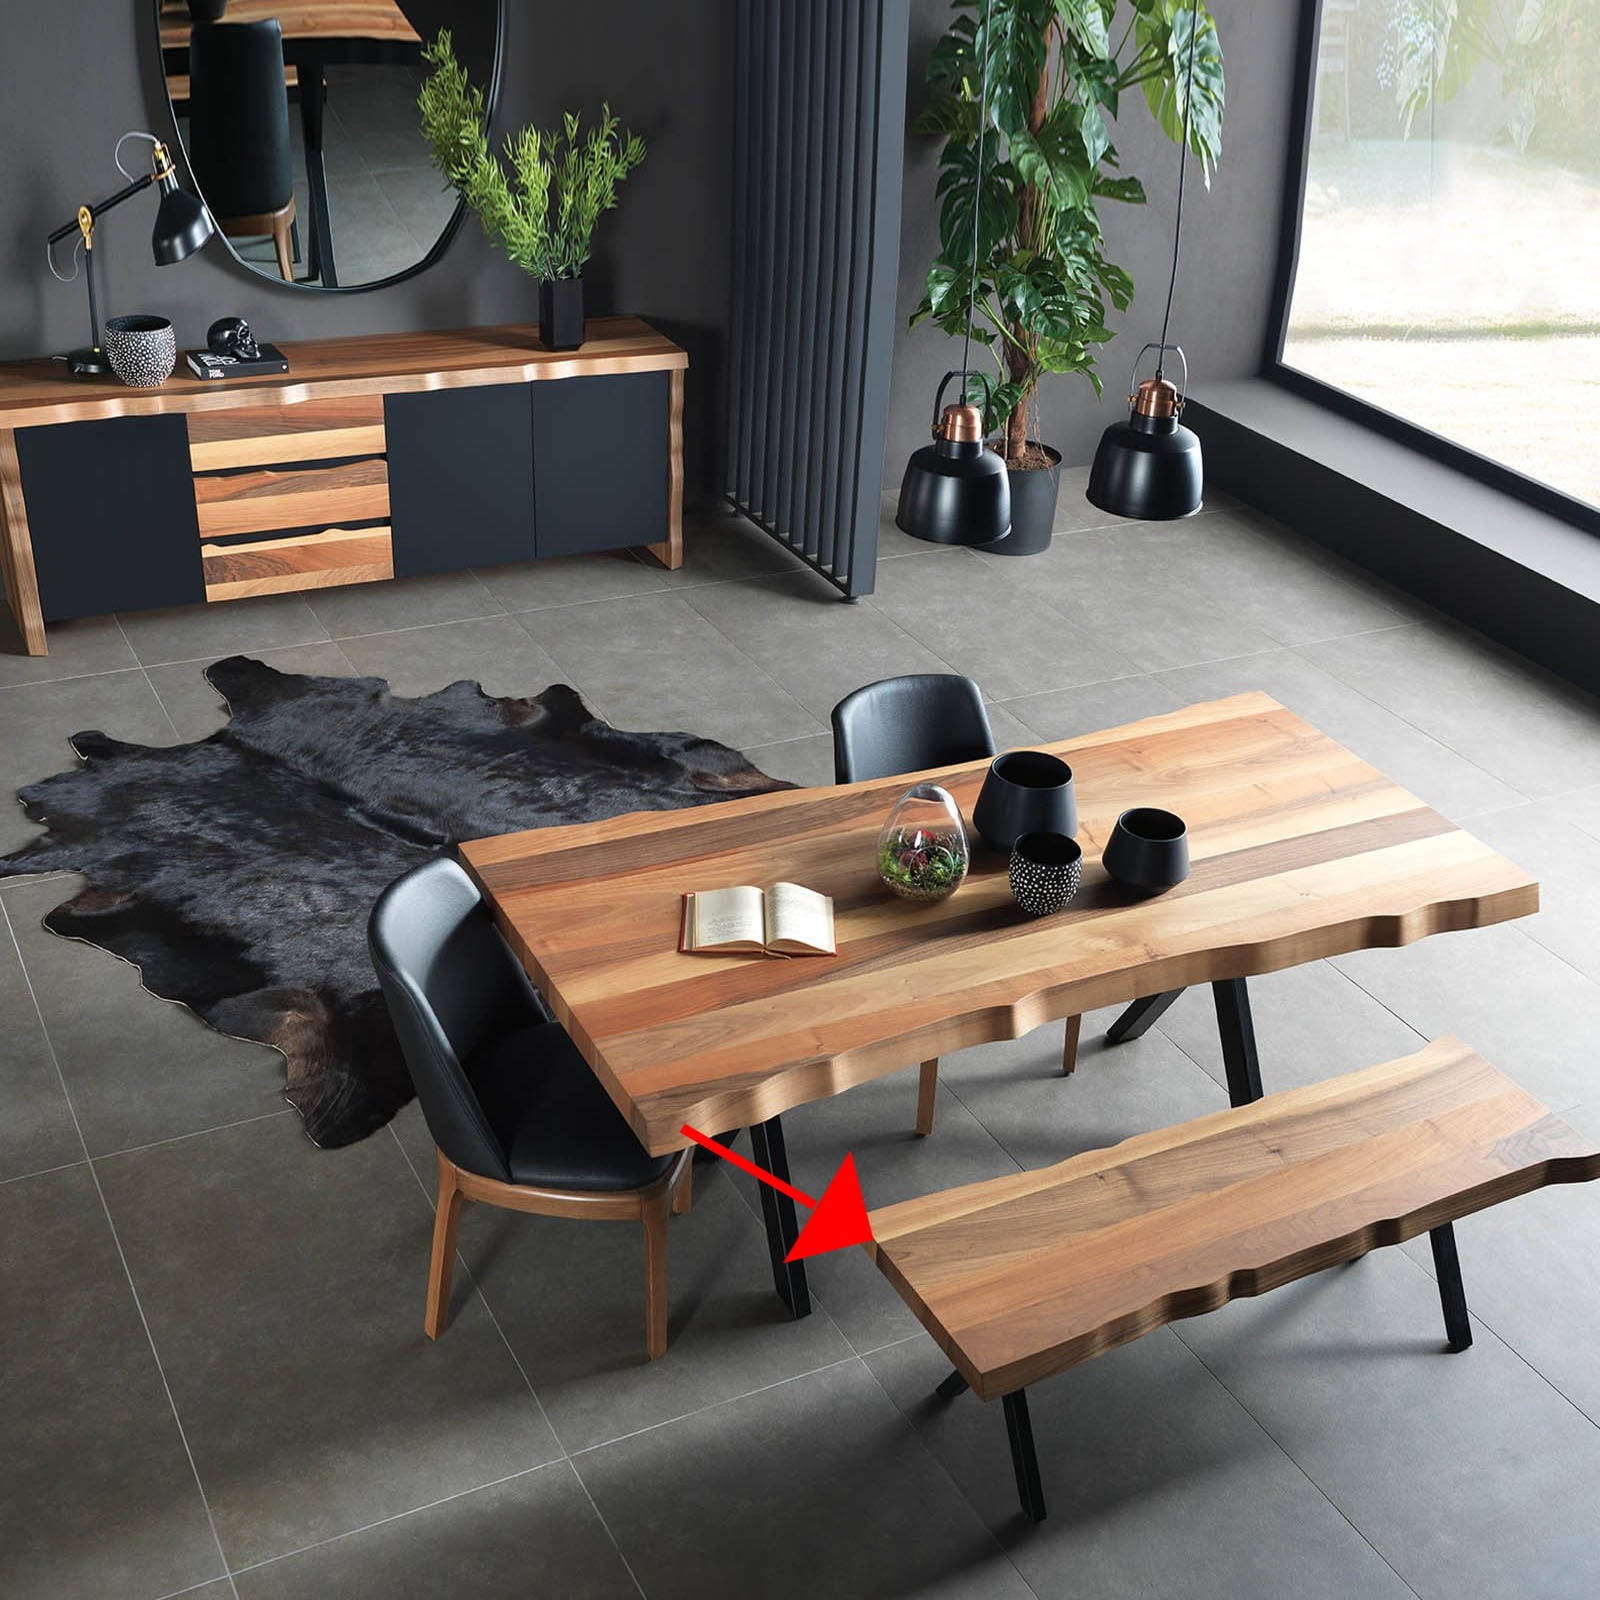 Monaco Natura Bench/coffee table  NAT-Bench - ebarza